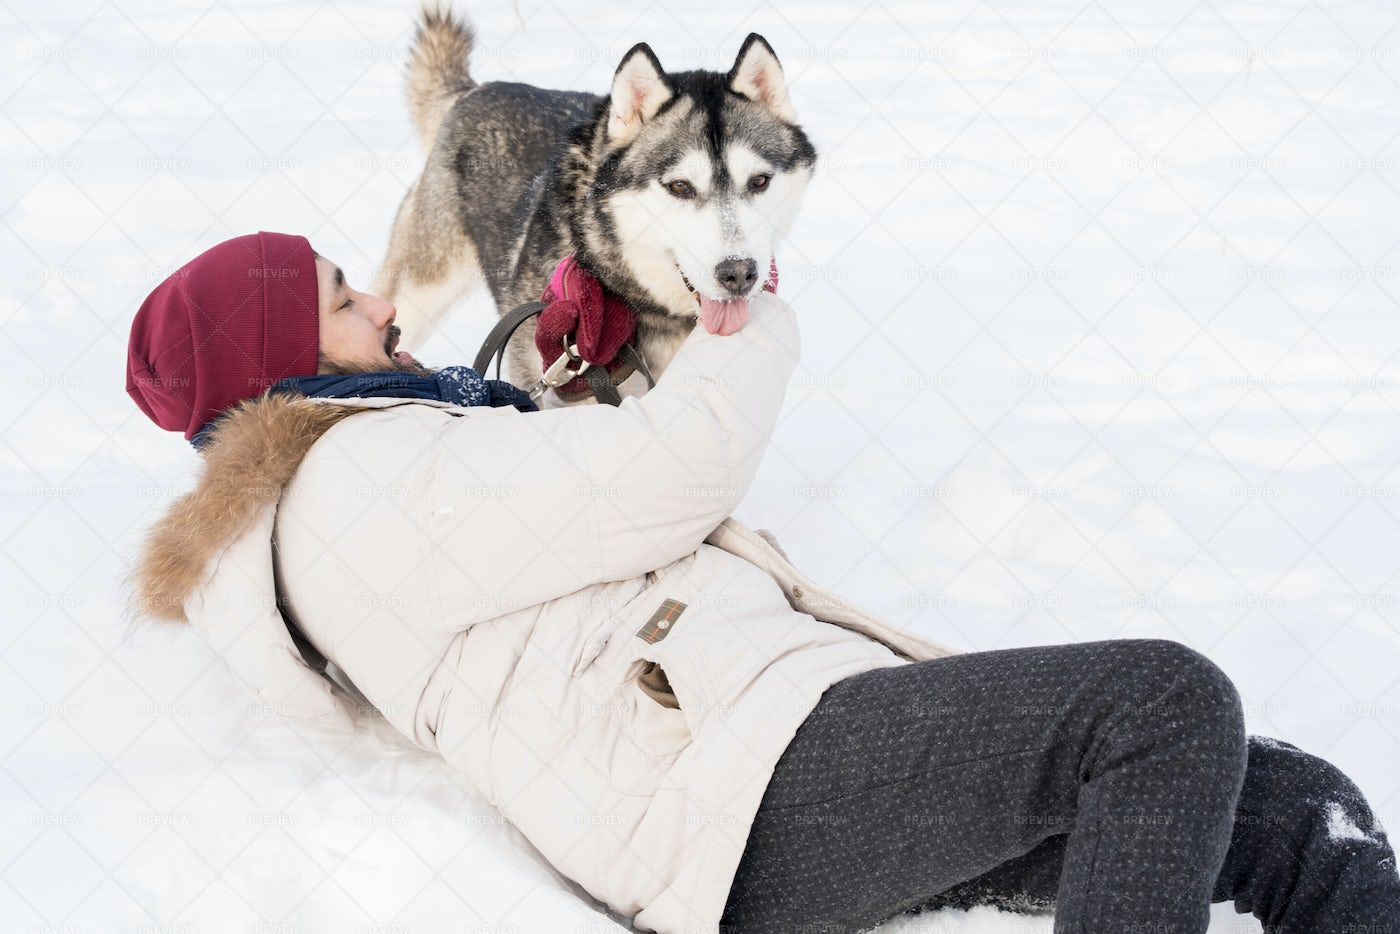 Carefree Man Playing With Dog In...: Stock Photos